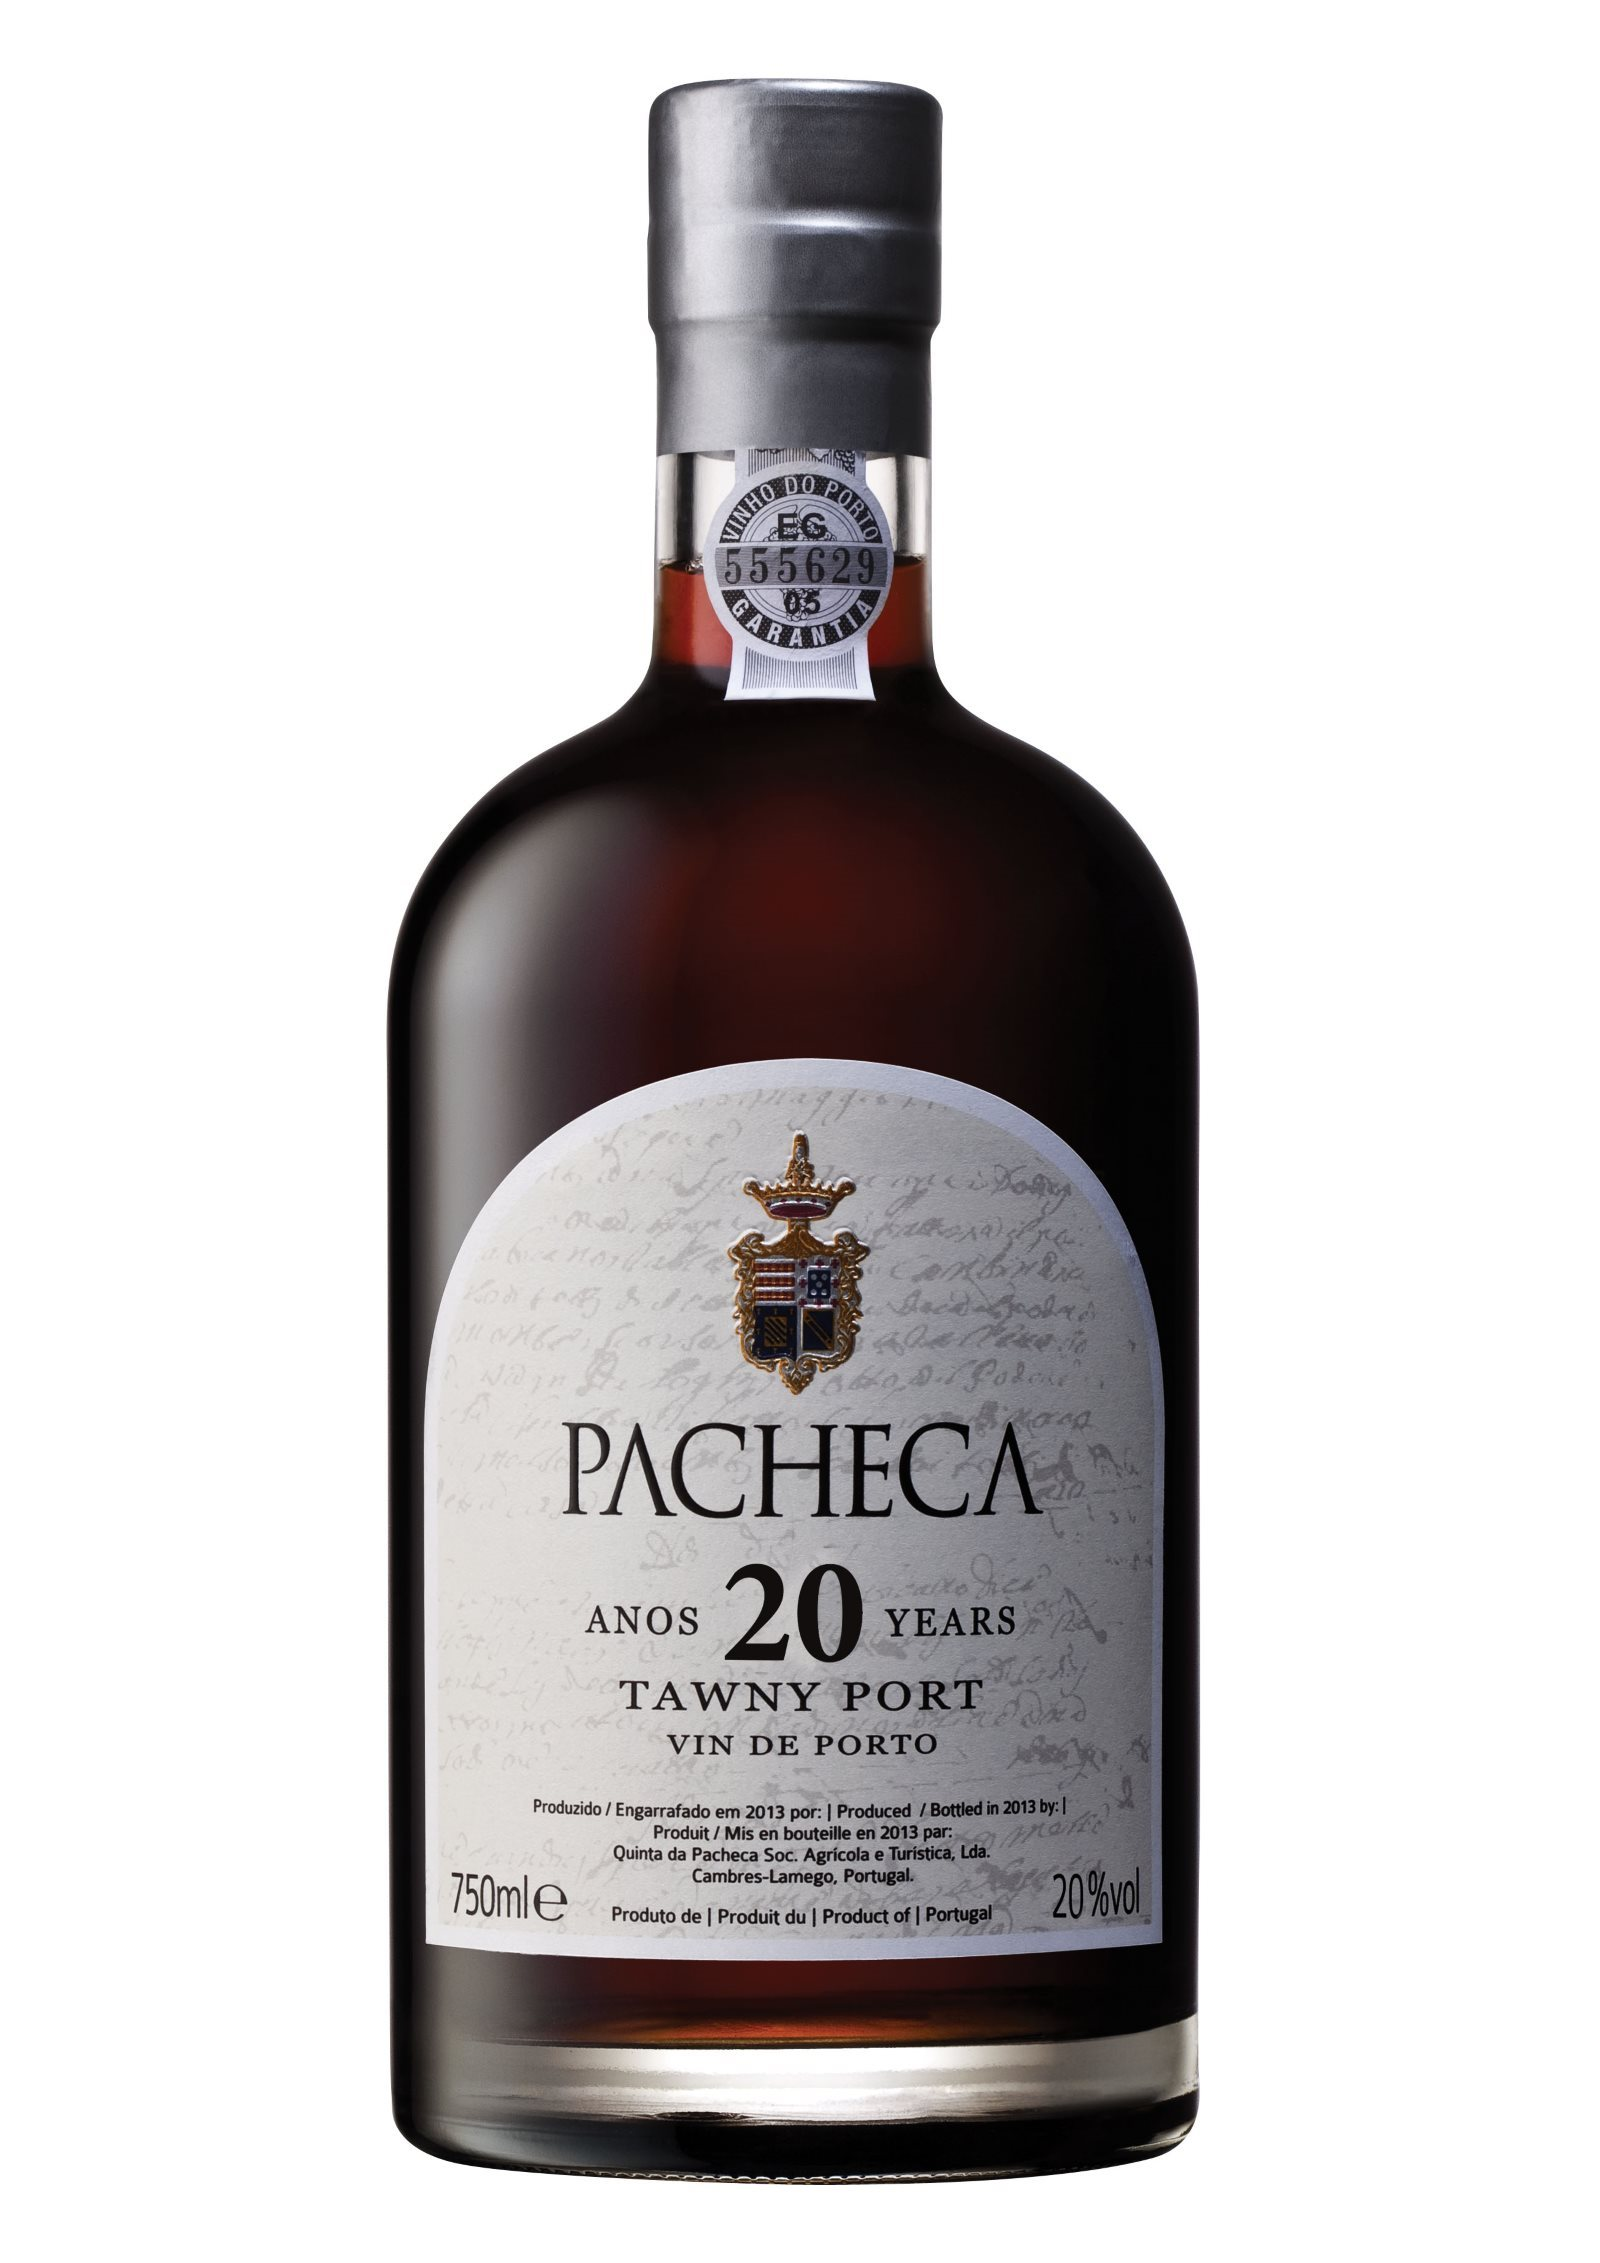 Pacheca Tawny Port 20 Years 75 cl